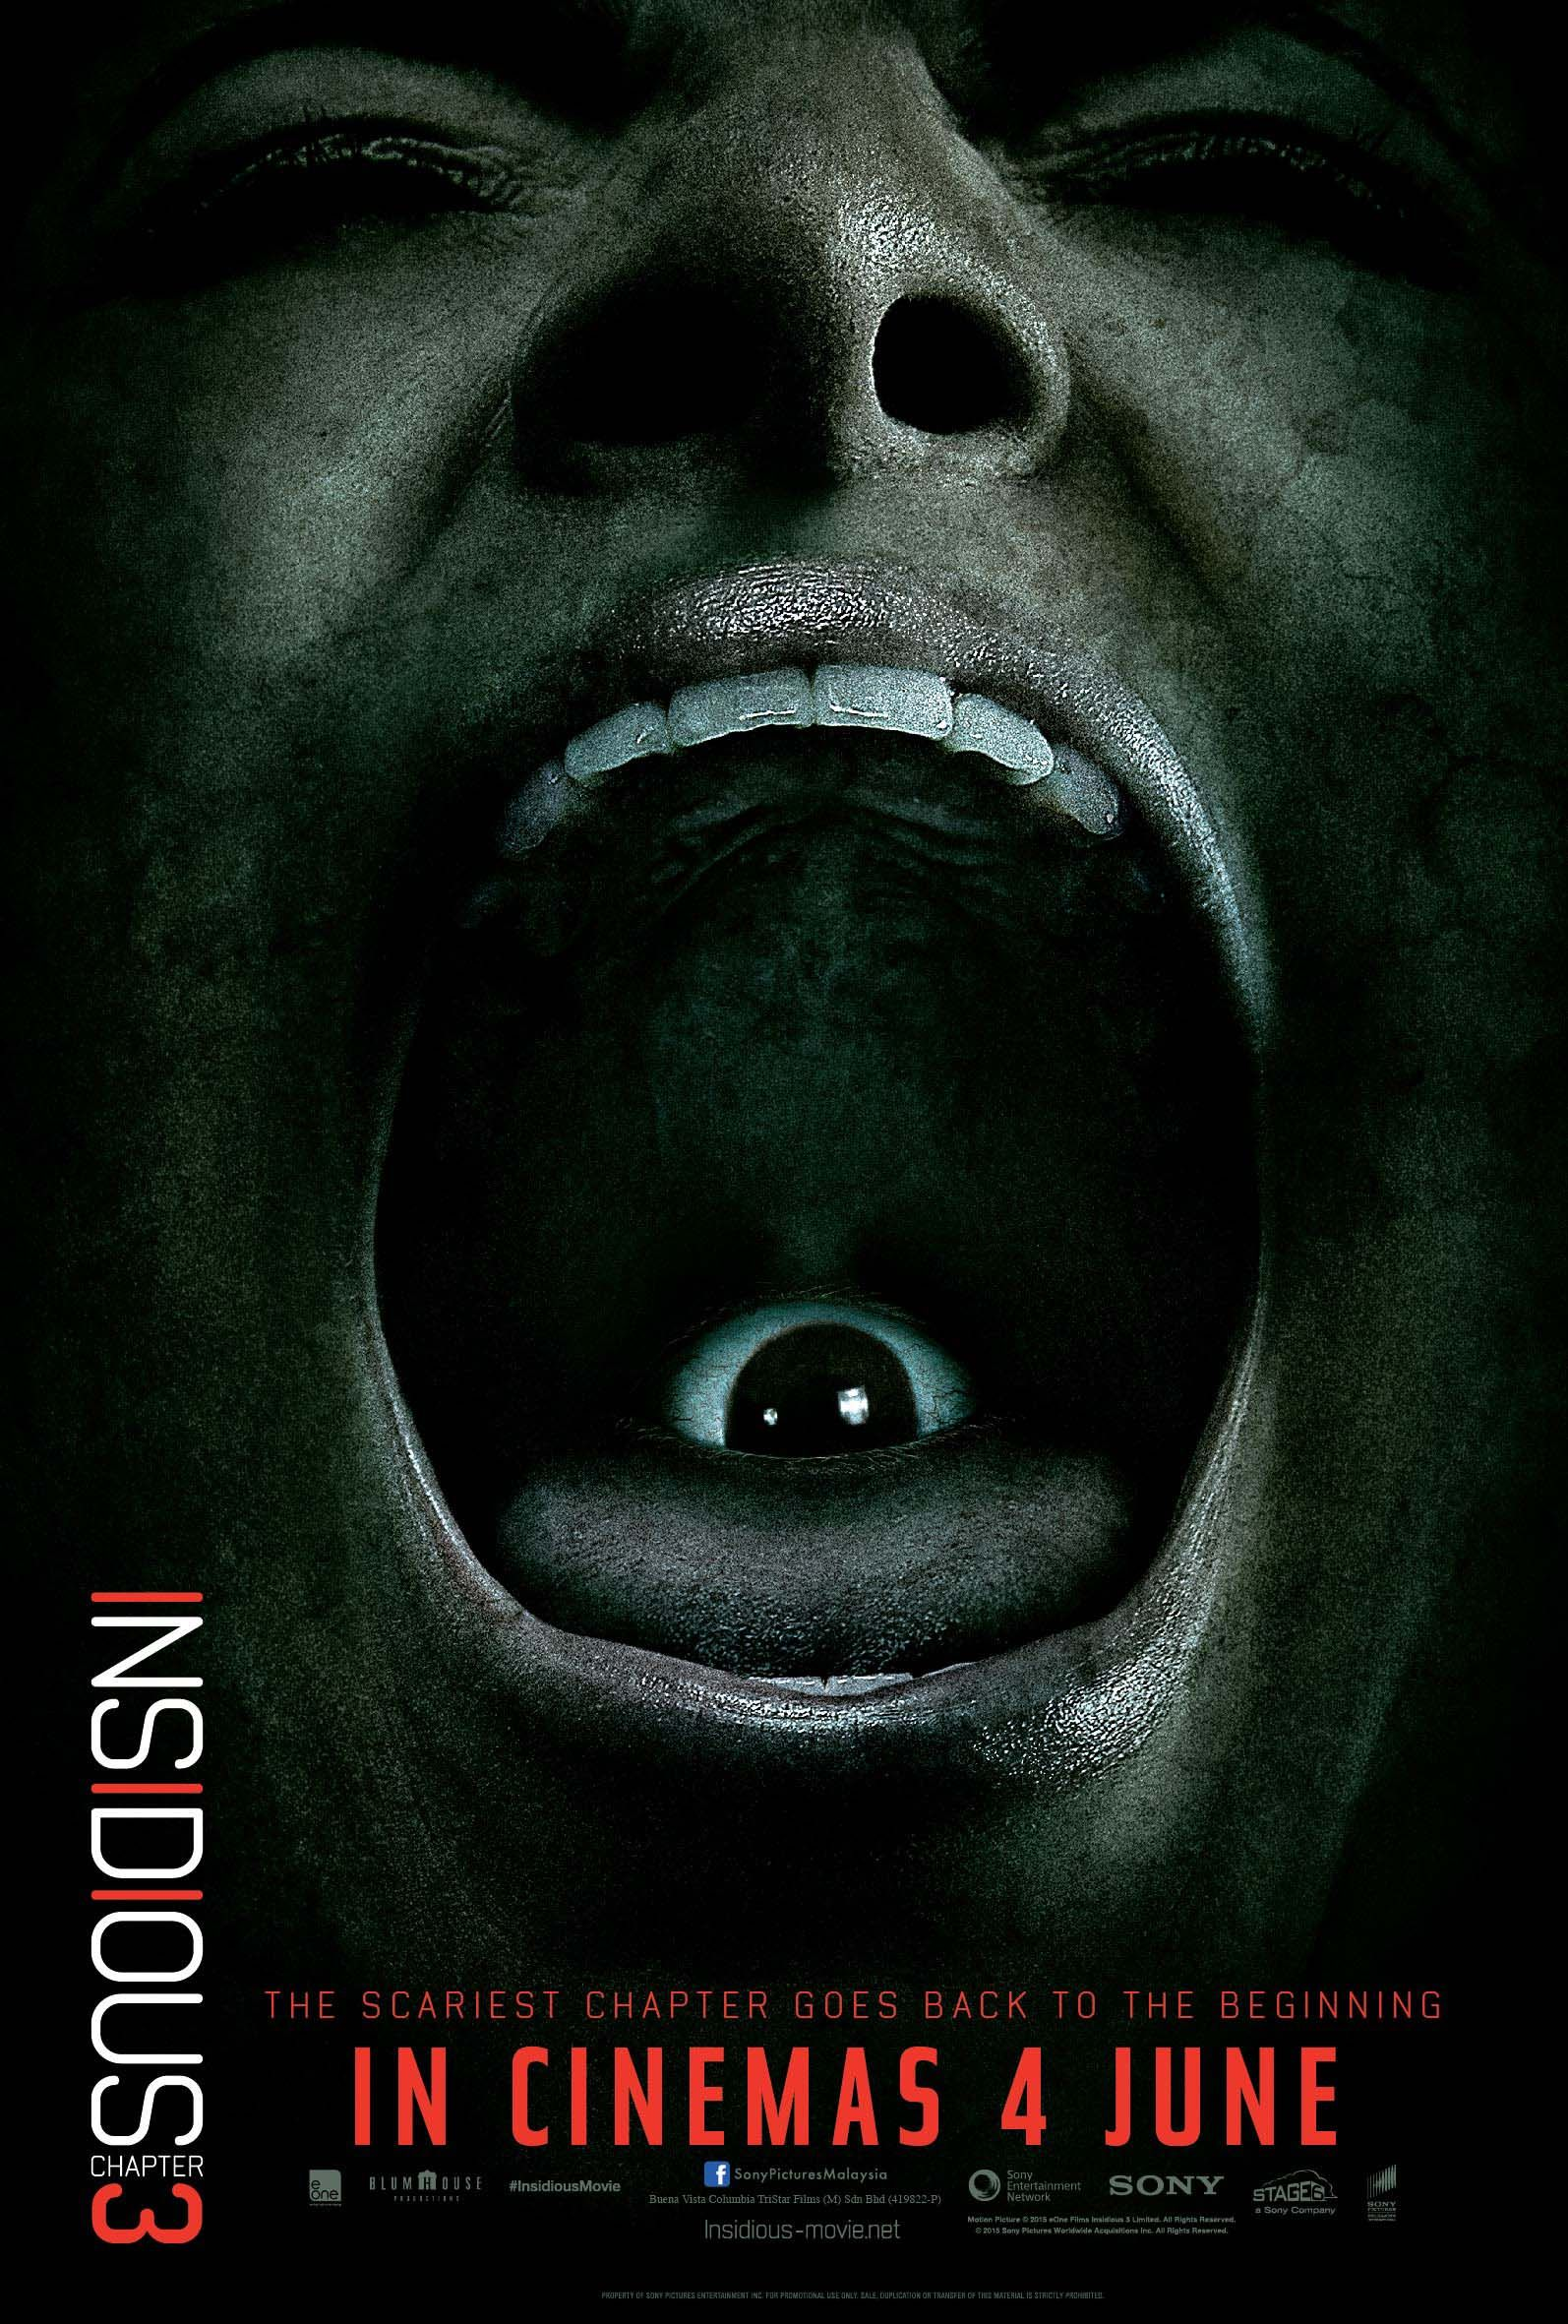 Insidious Chapter 3 Review 4 5 Stars